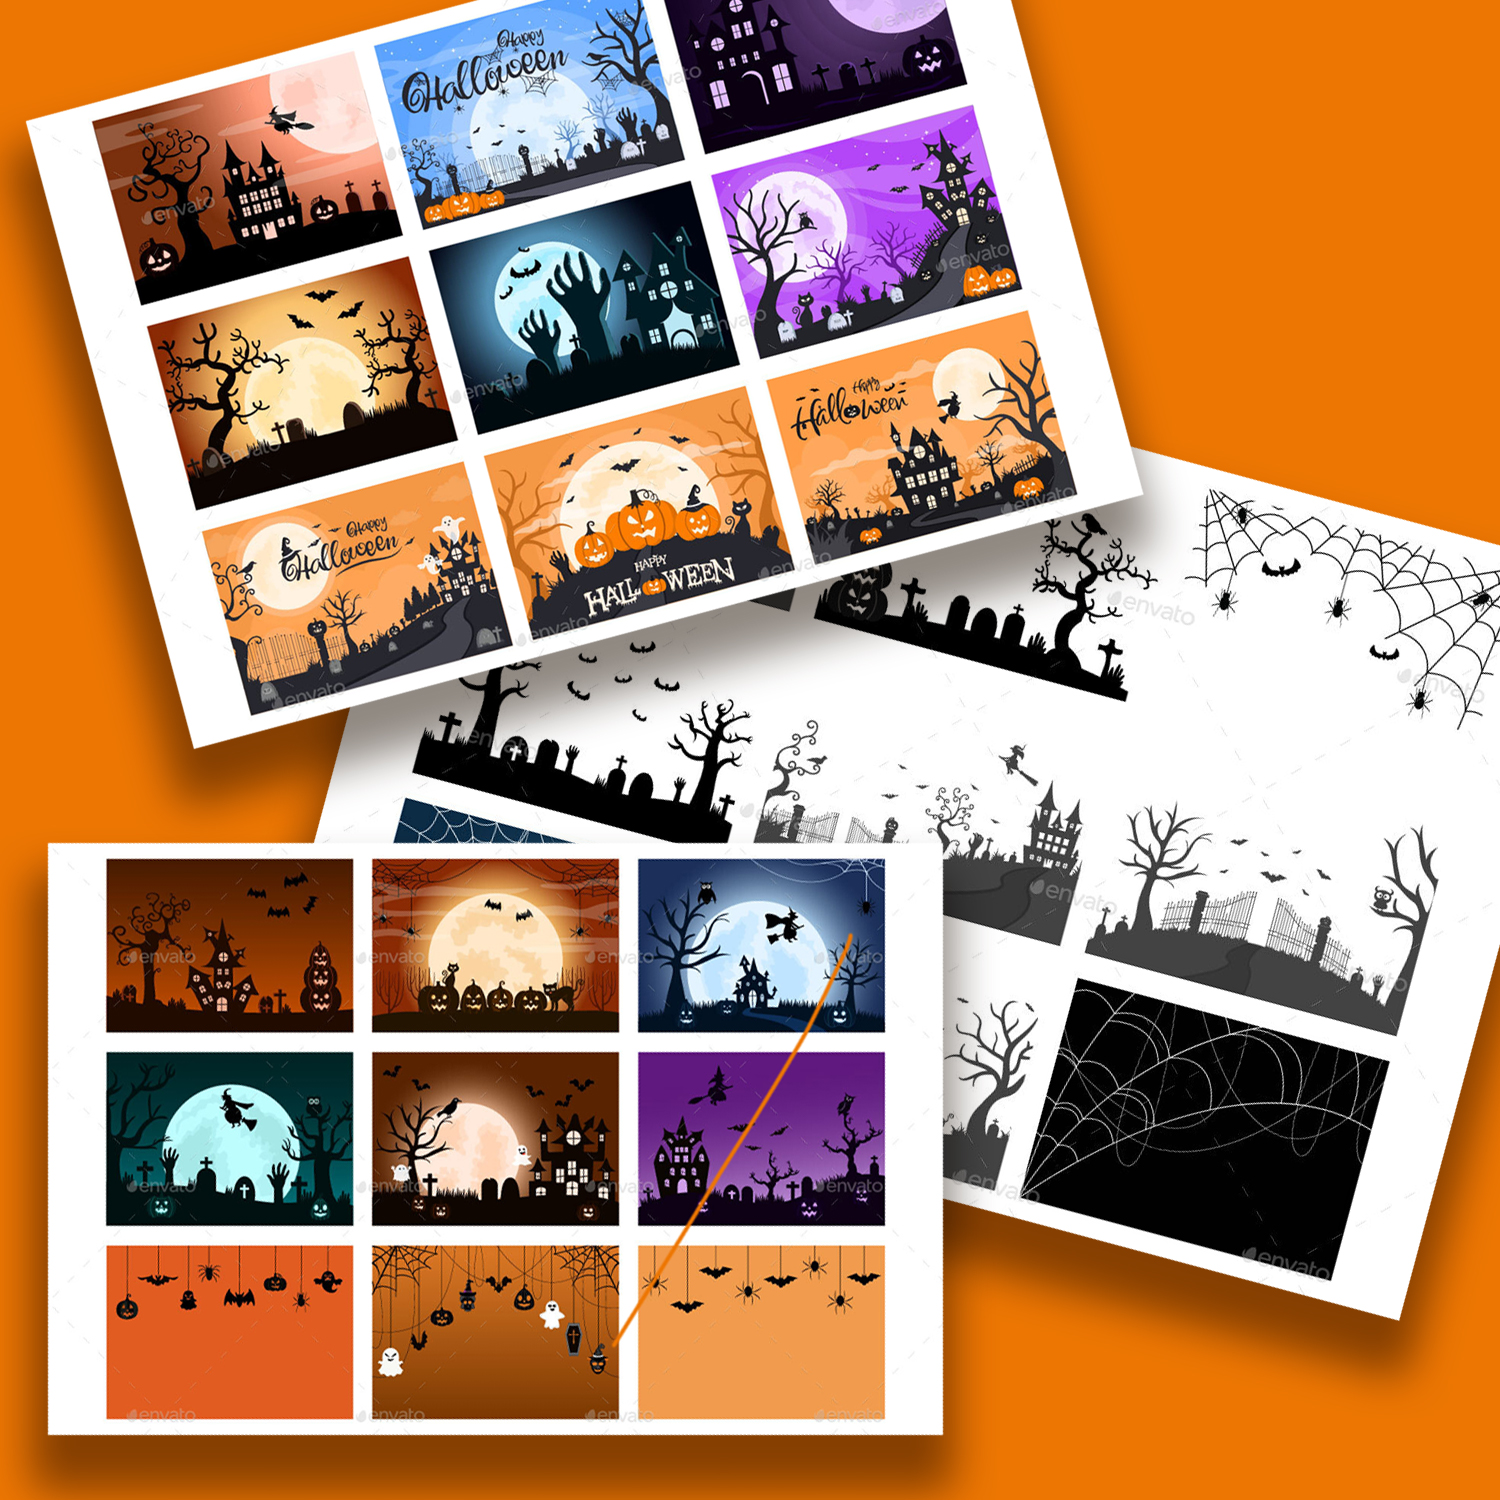 31 Halloween Night Party Illustration cover image.